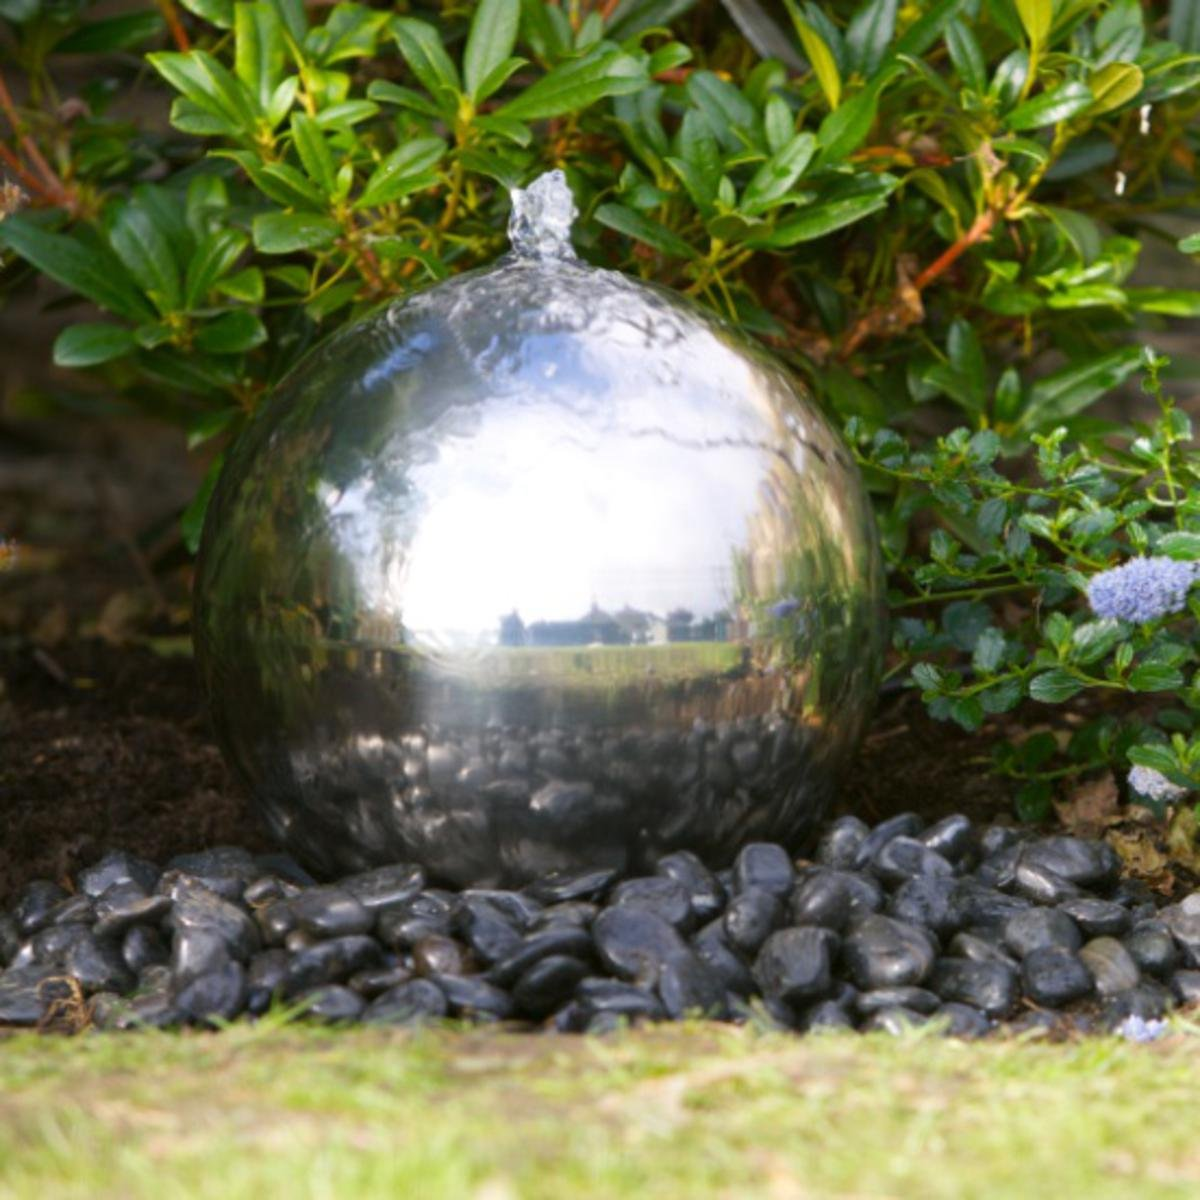 30cm Solar Powered Sphere Stainless Steel Garden Water Feature:  Amazon.co.uk: Garden U0026 Outdoors